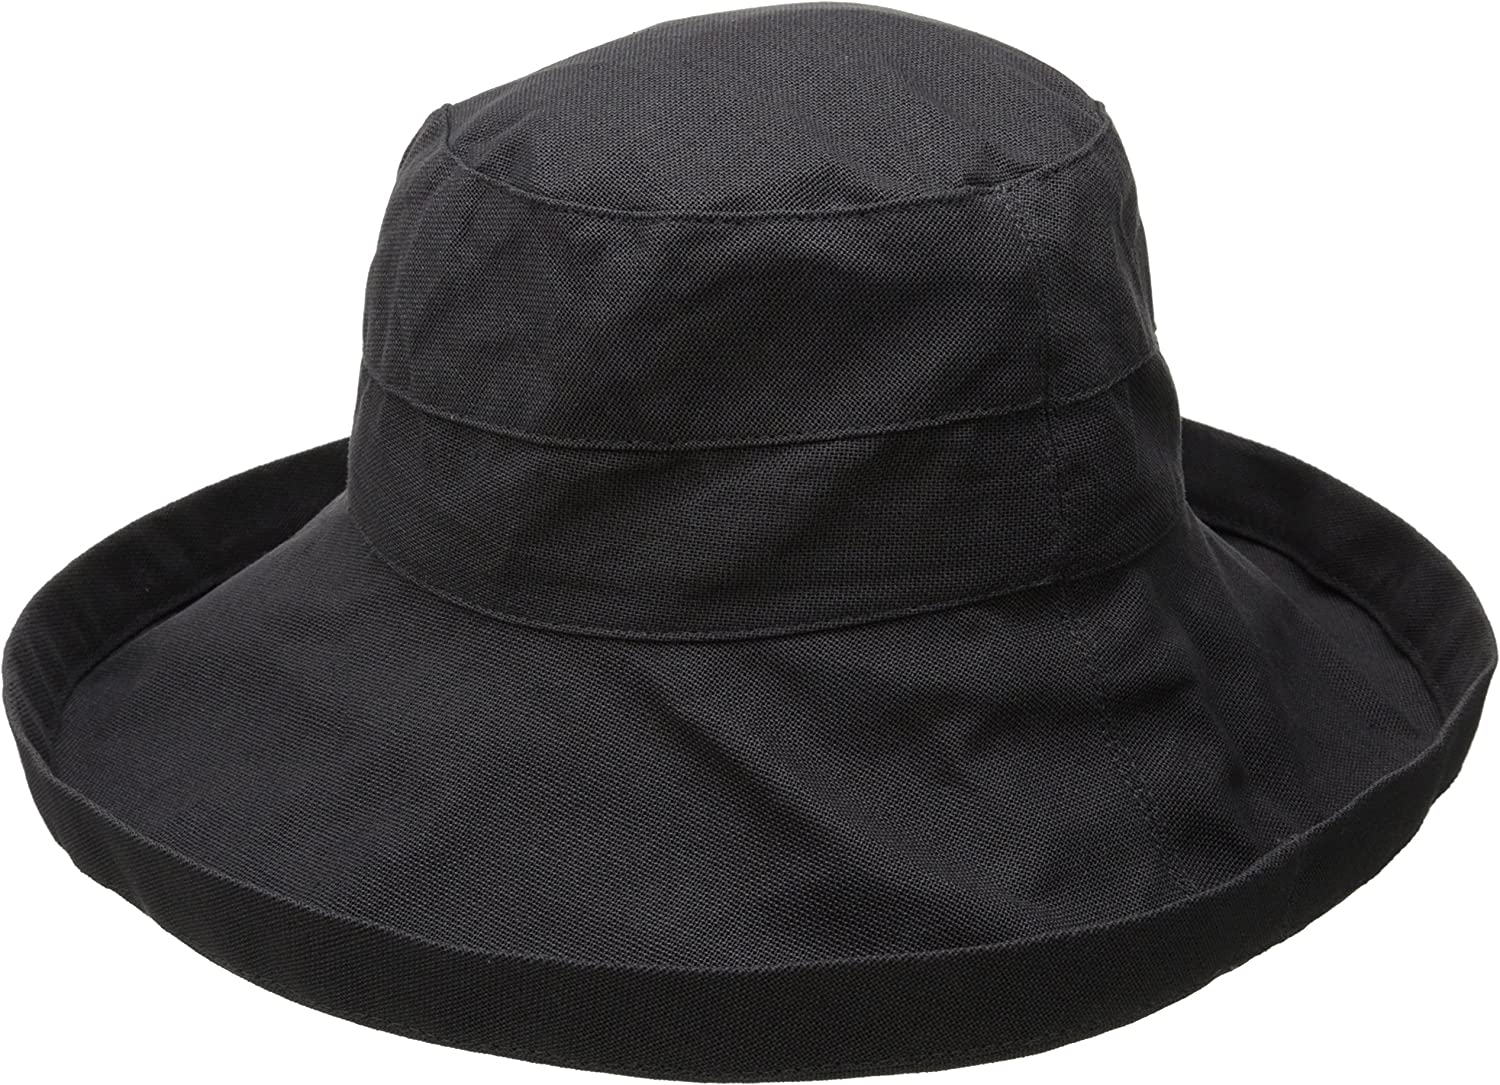 Rating Scala Women/'s Cotton Hat with Inner Drawstring and Upf 50